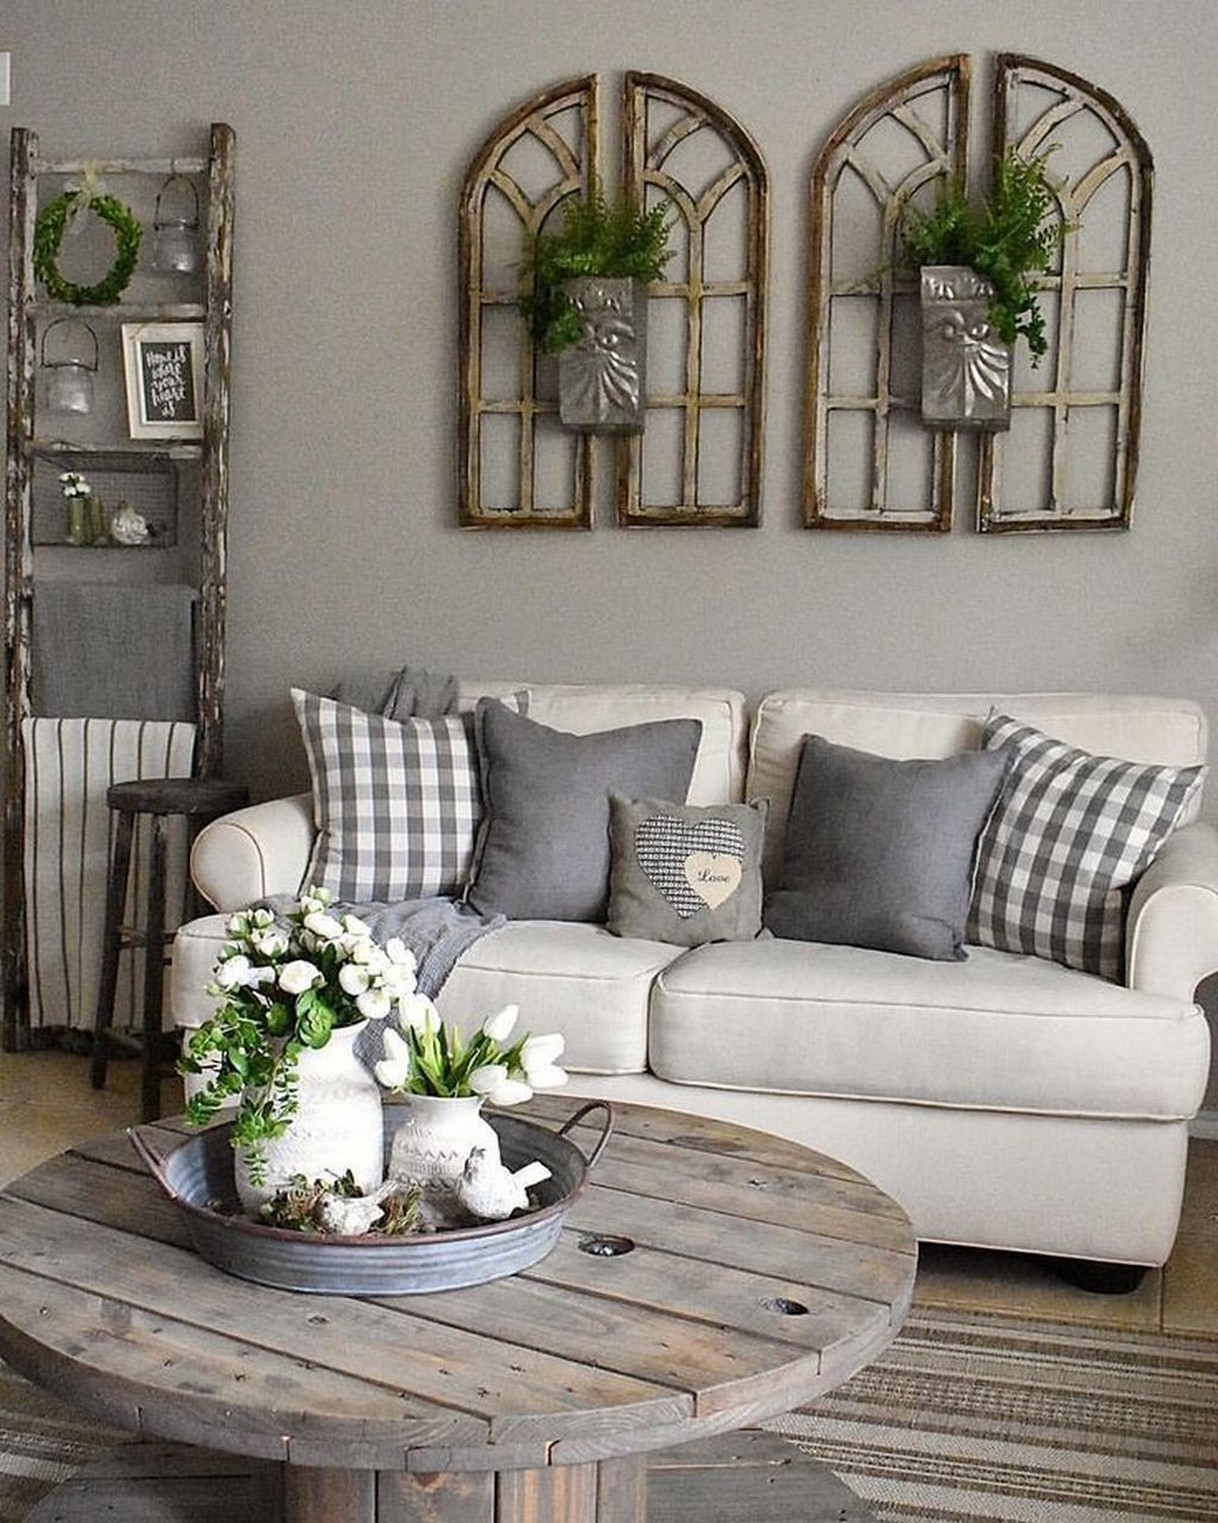 67 Rustic Home Decorating Ideas In 2020 Home Decor 42